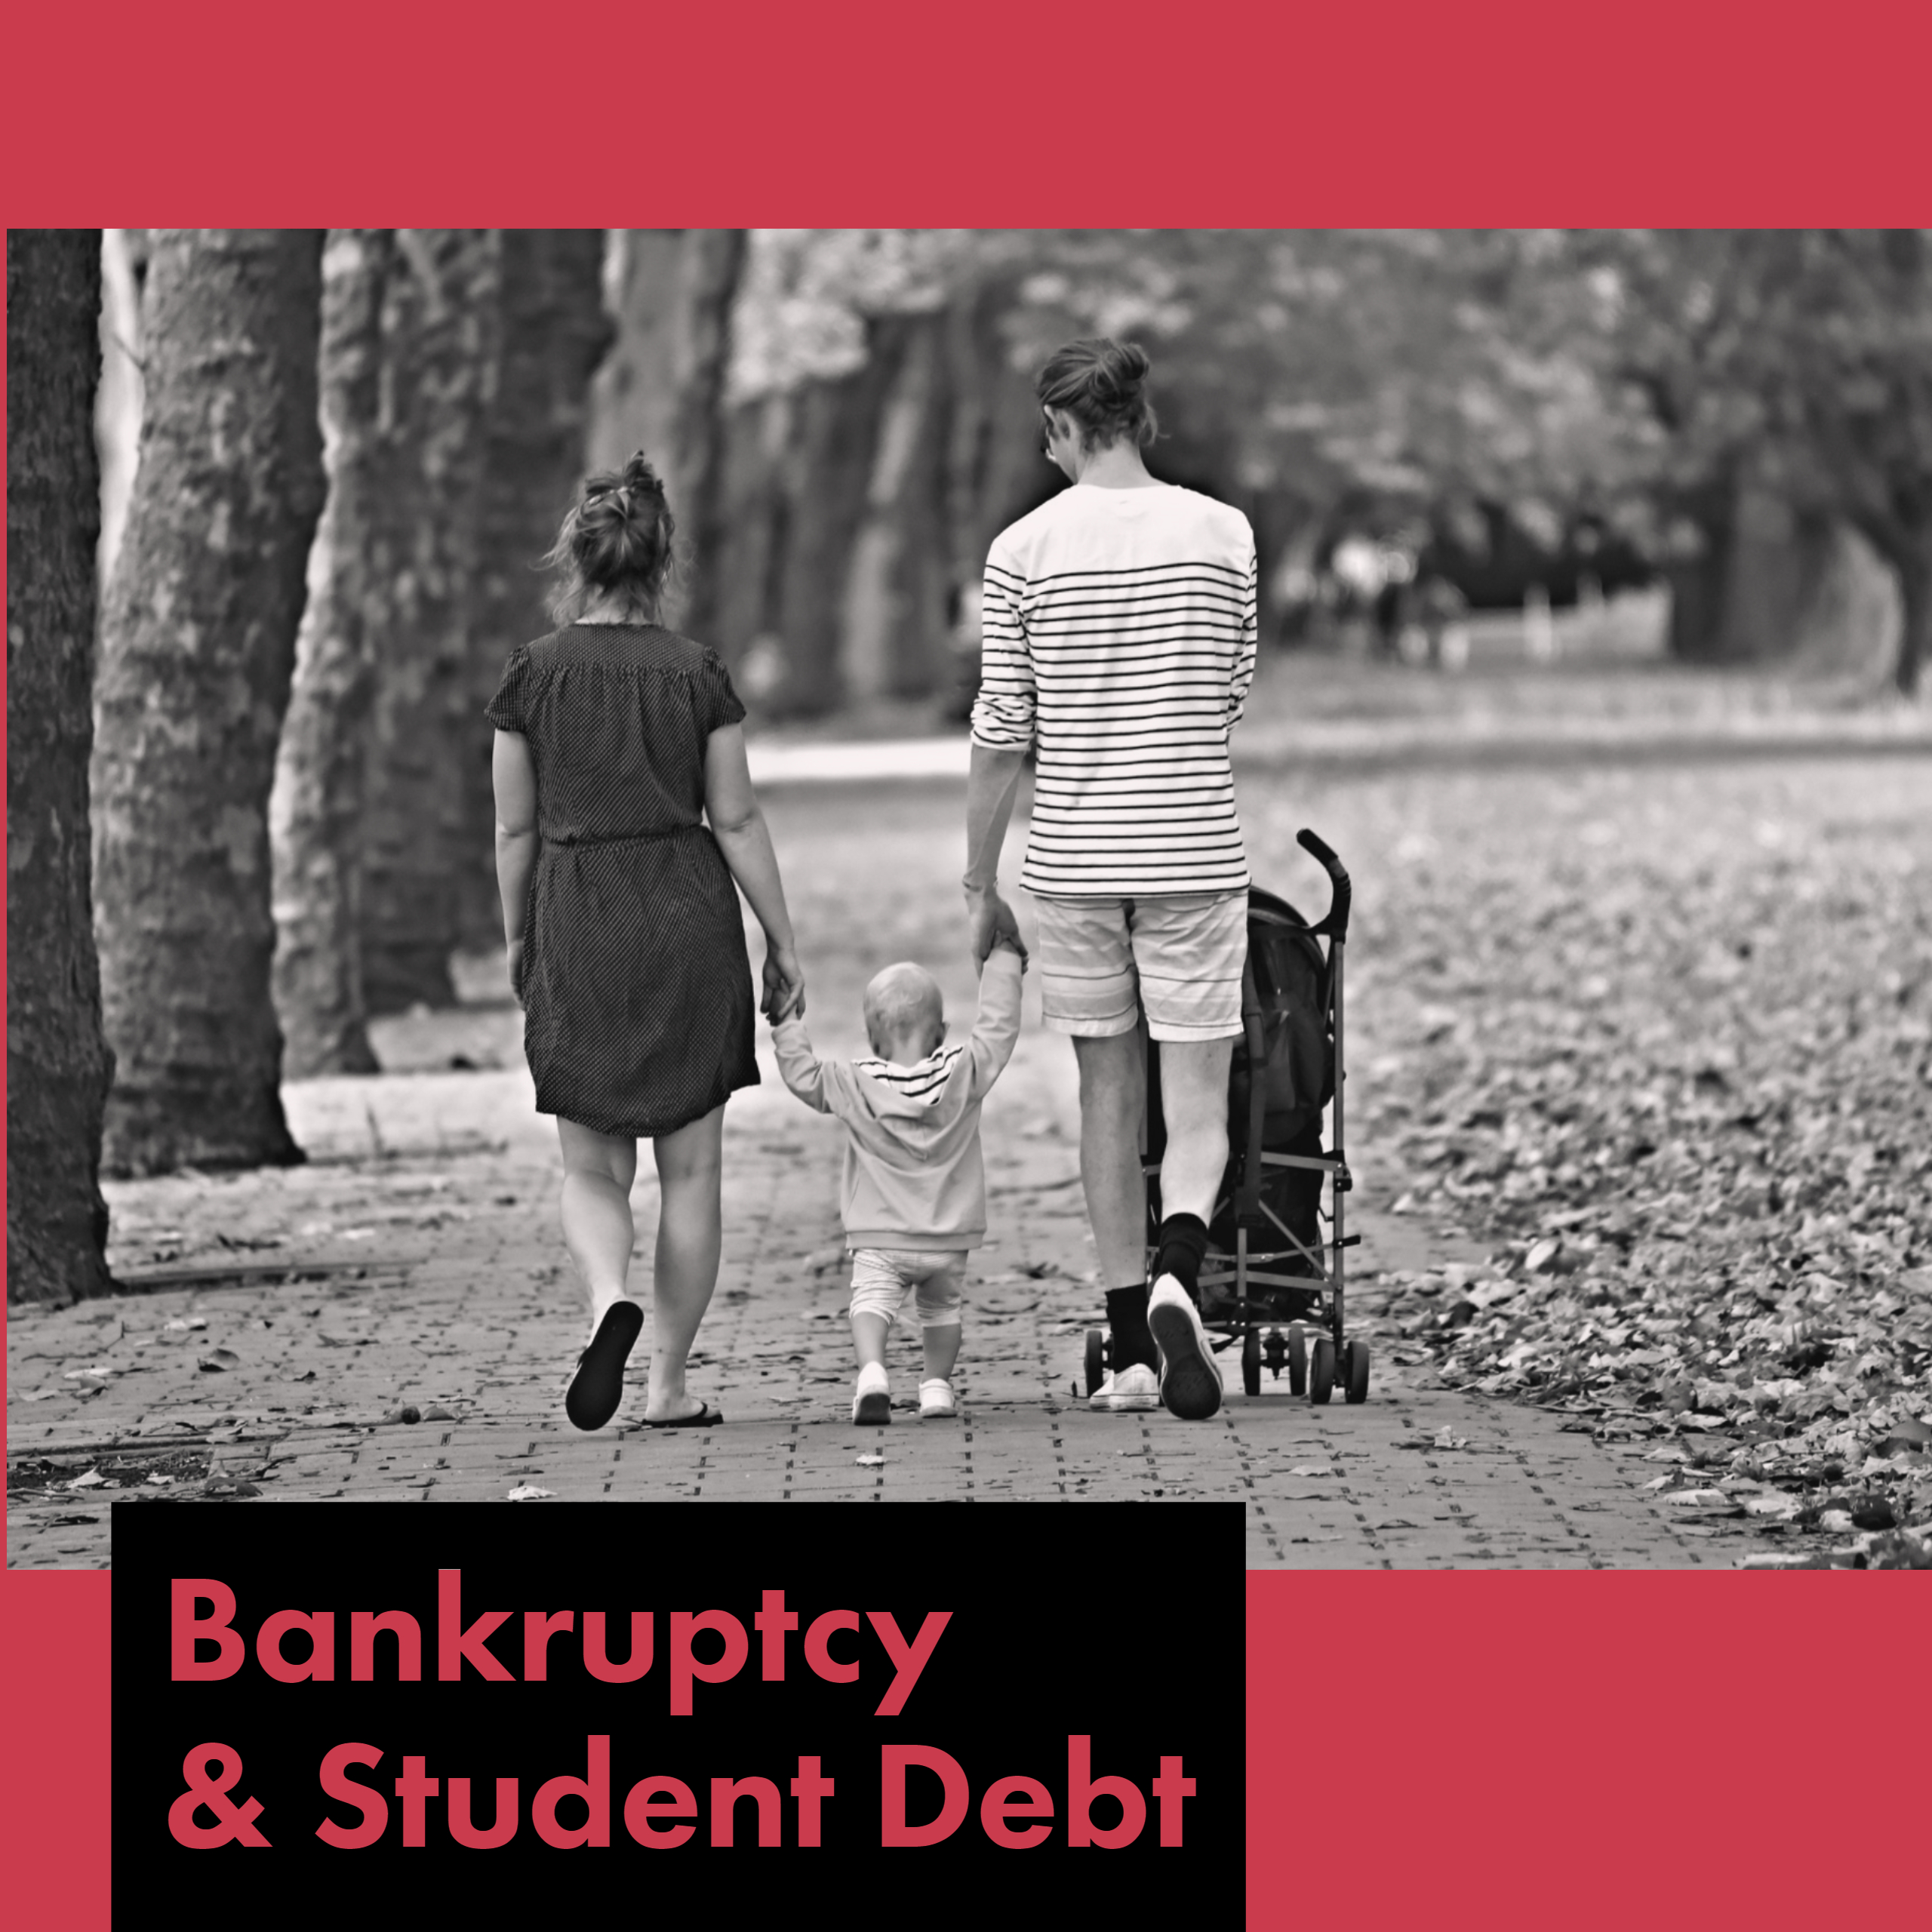 how to get help with student loan debt - Bankruptcy